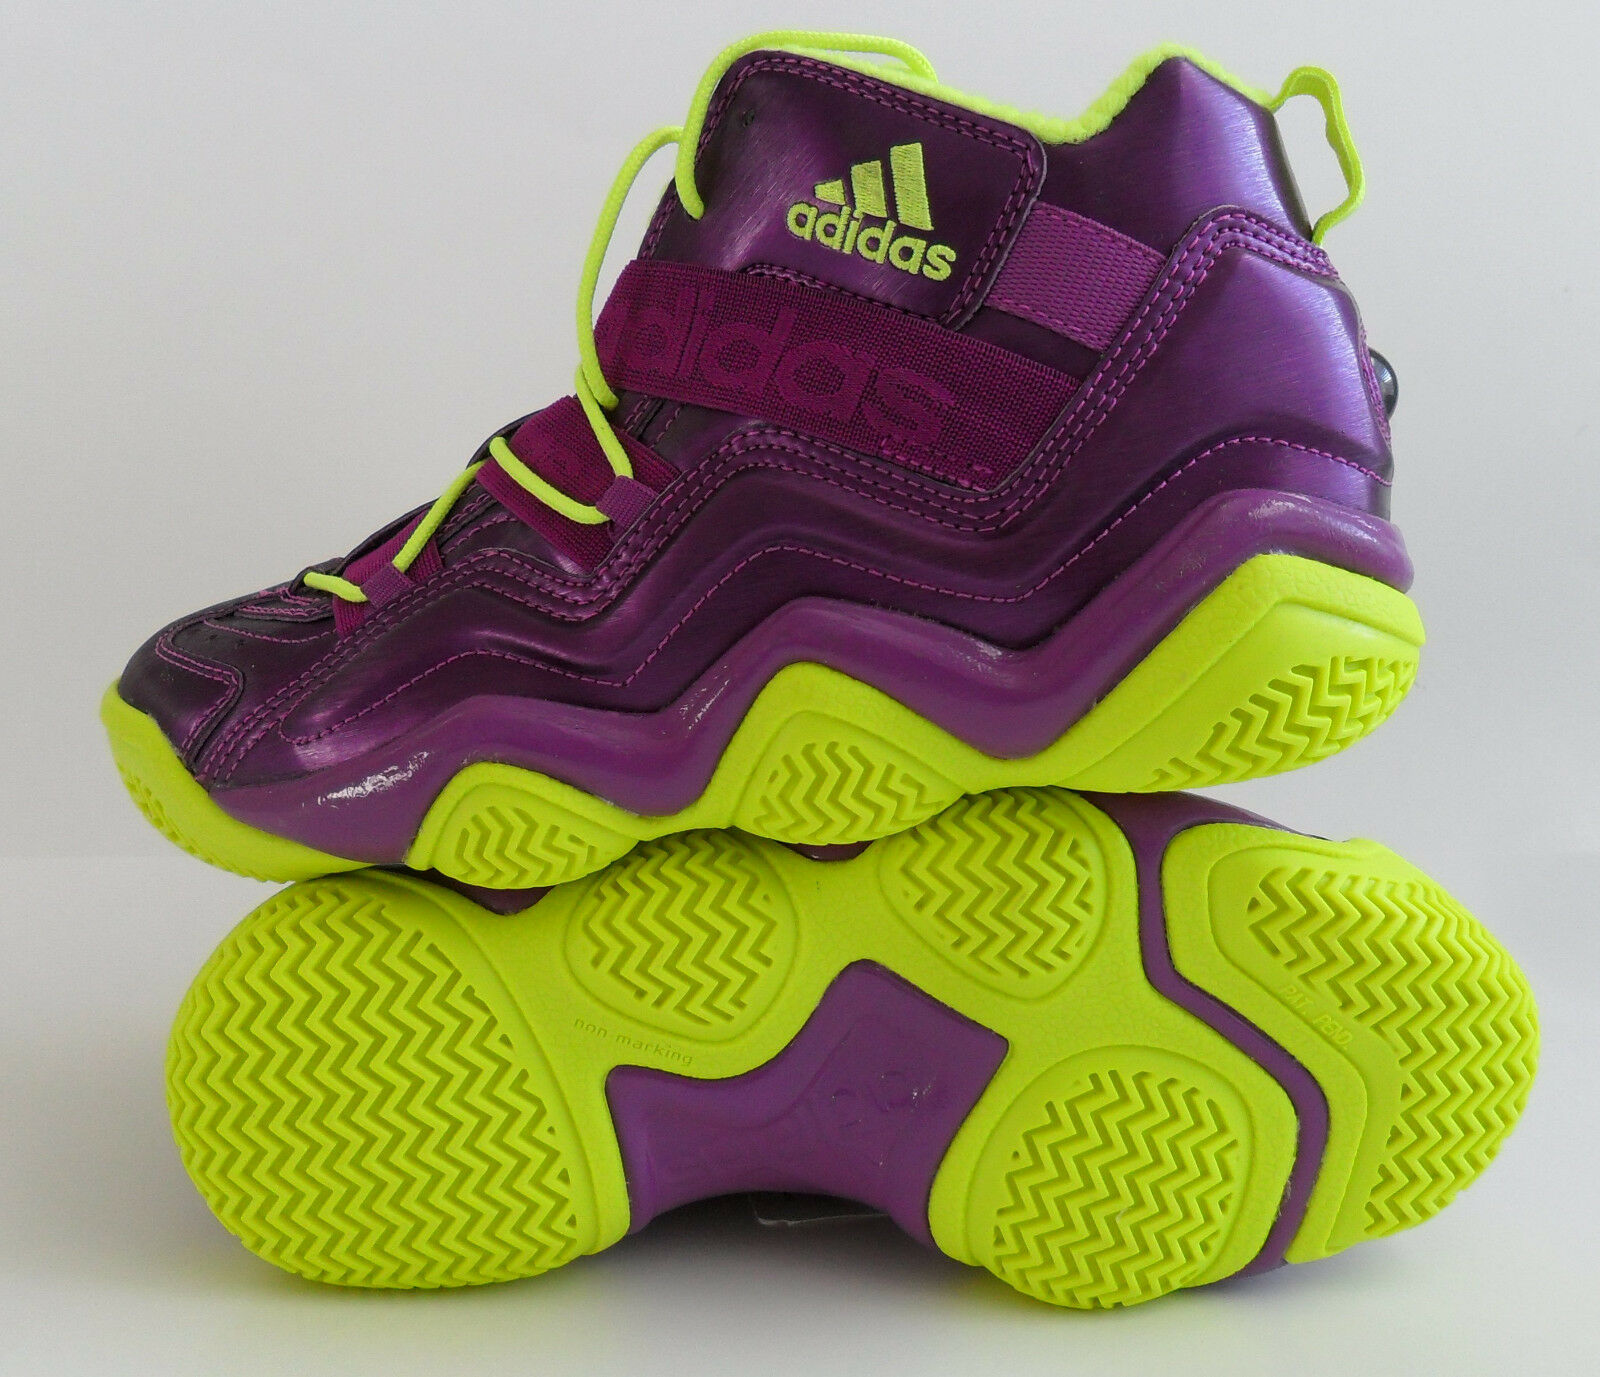 NEWAdidas TOP TEN 2000 LA THE DREAM CITY crazy eqt 8 Basketball shoesMens sz 13